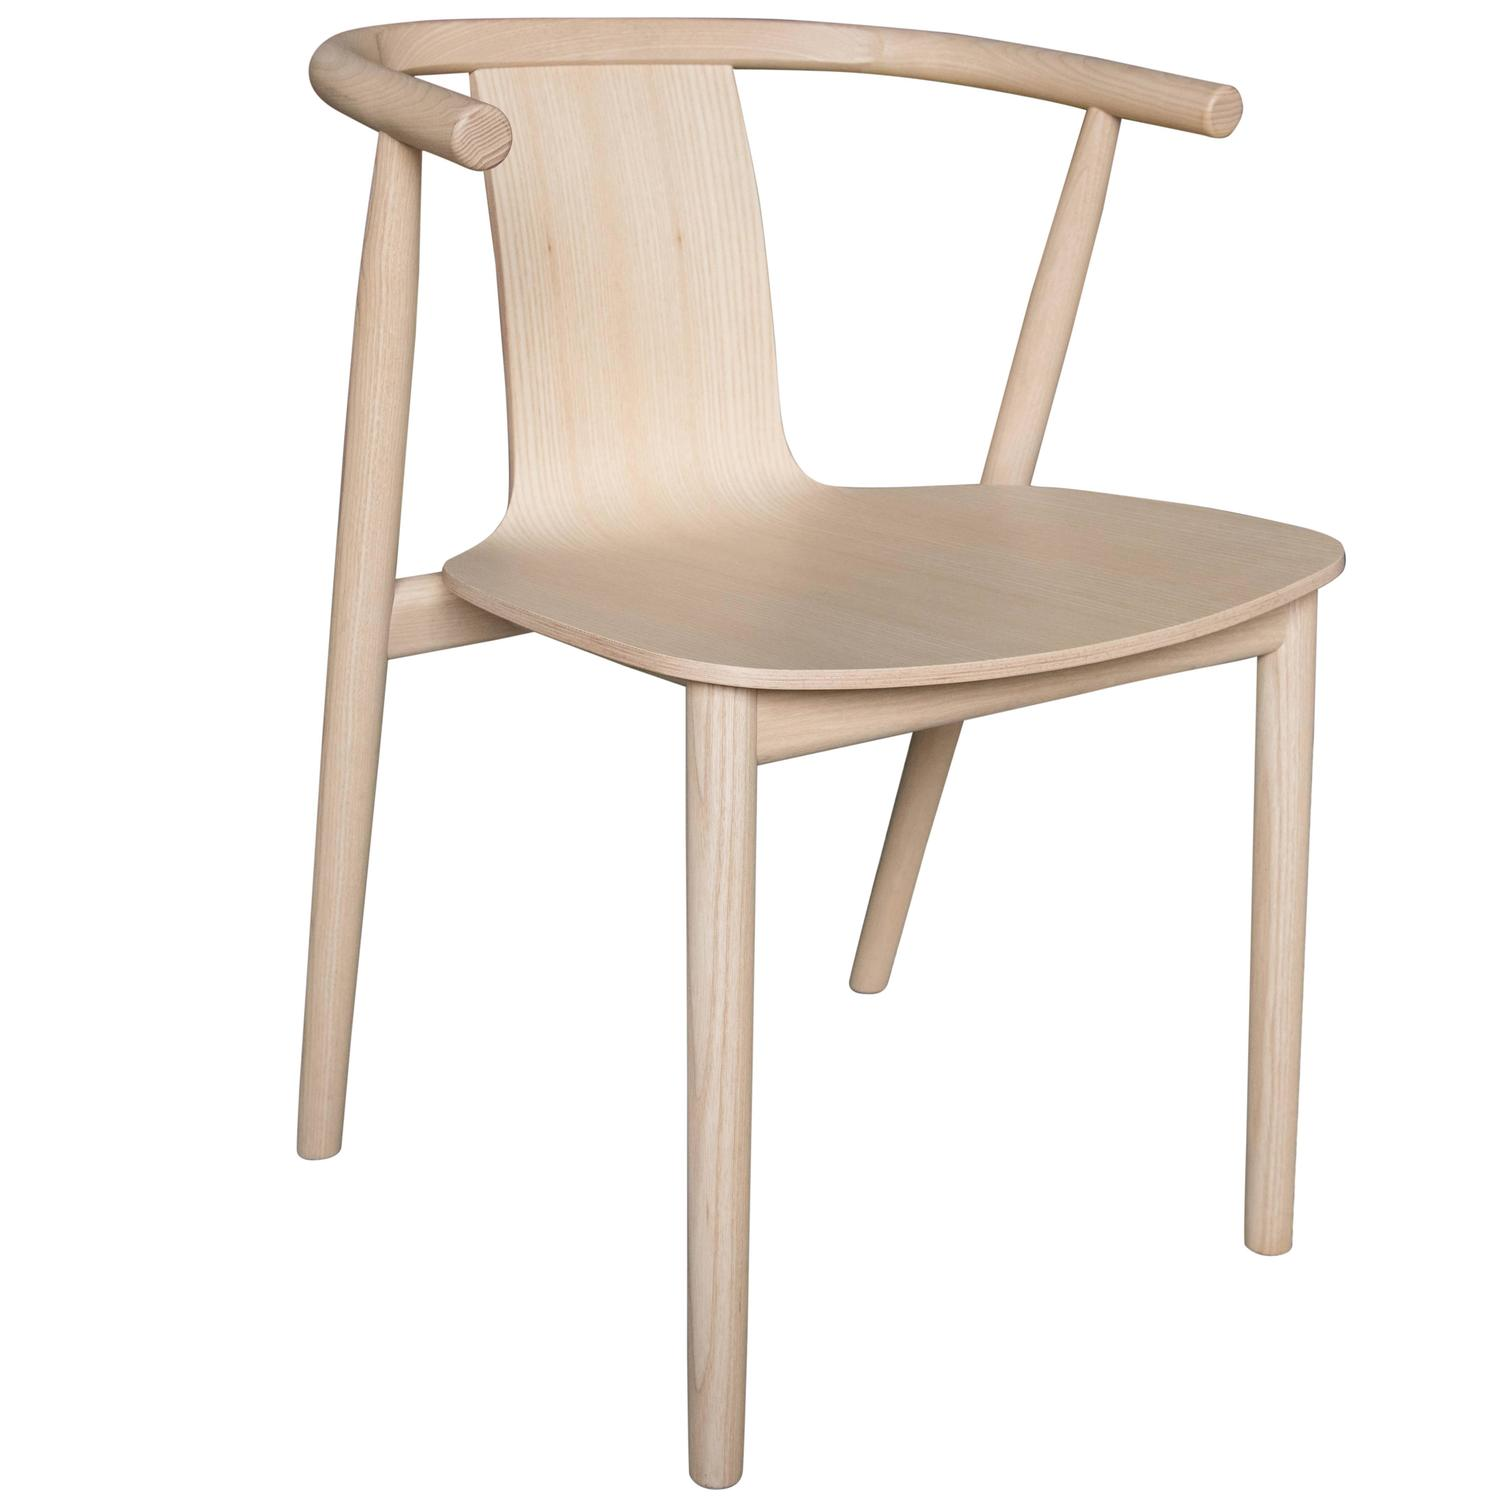 Bac chair by jasper morrison for cappellini for sale at for Plywood chair morrison